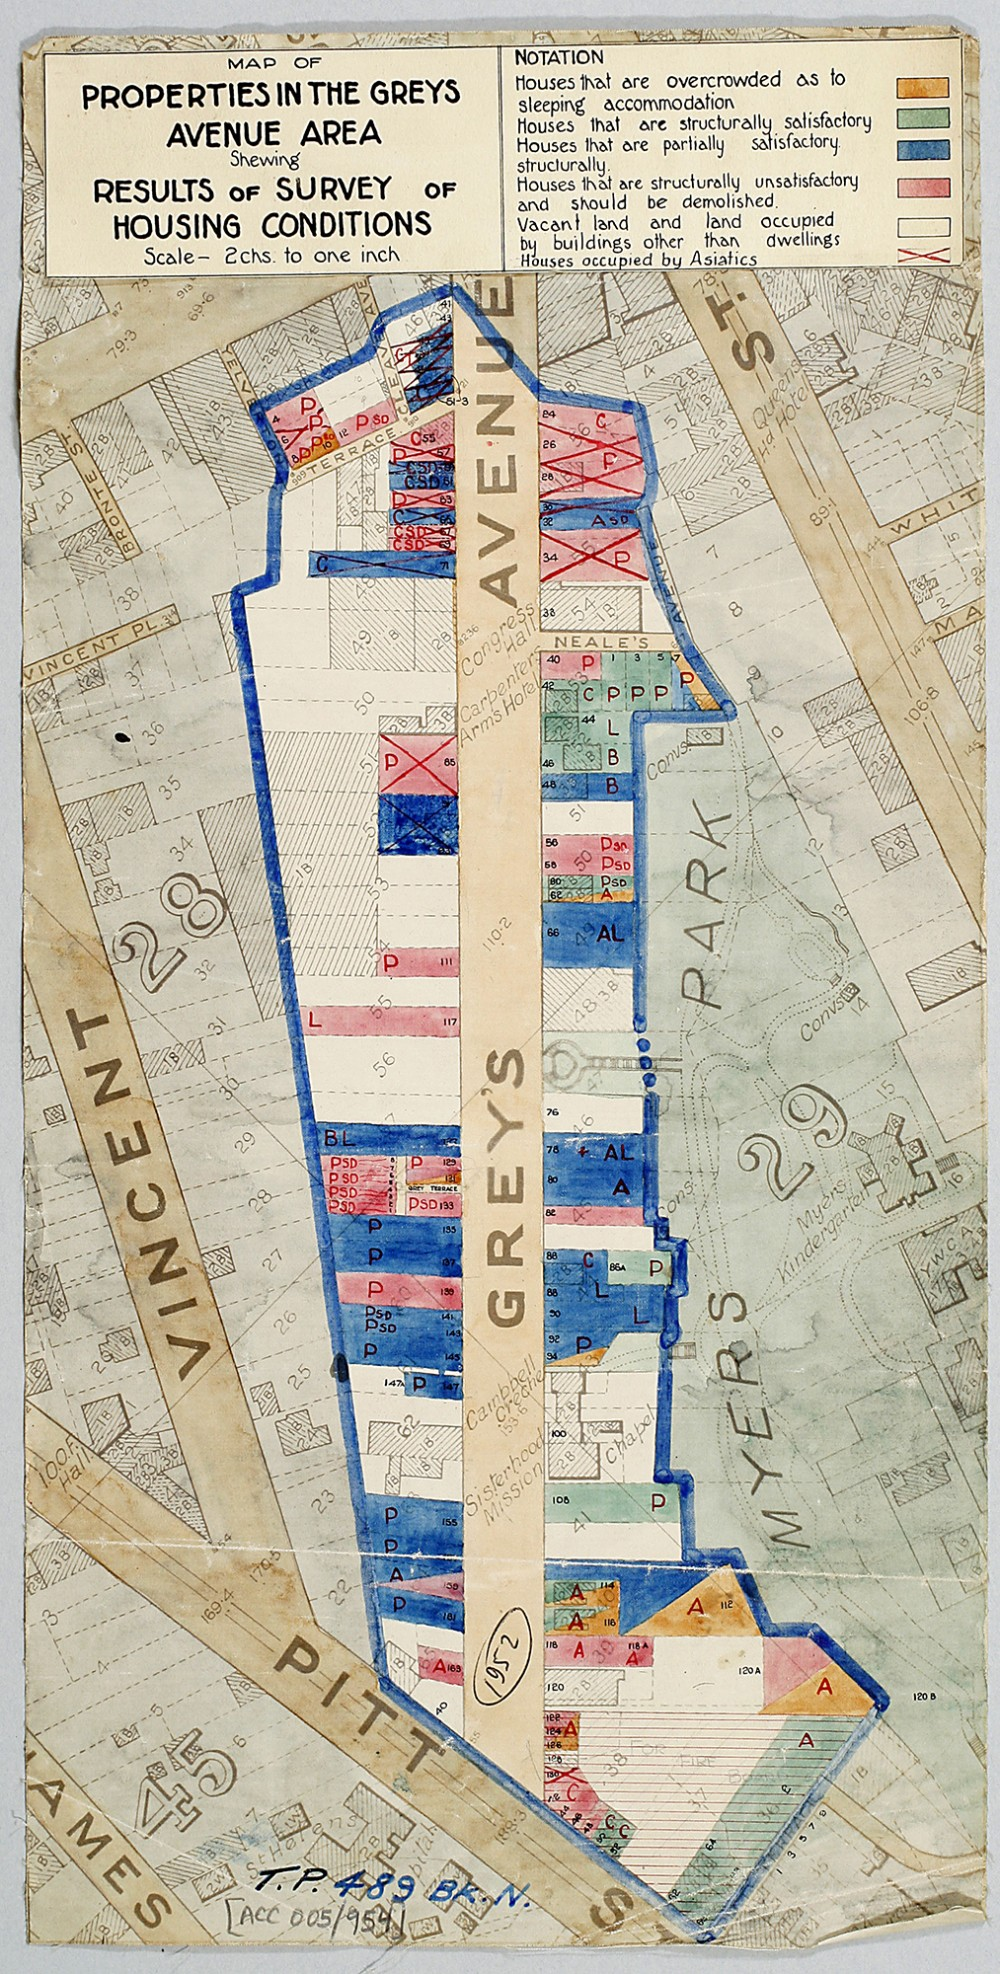 Auckland City Council Town Planning Maps with T. P. [Town Planning] Numbers MAP OF PROPERTIES IN THE GREYS AVENUE AREA SHOWING RESULTS OF SURVEY OF HOUSING CONDITIONS 1952 / 1935 Archives' reference: ACC 005/954